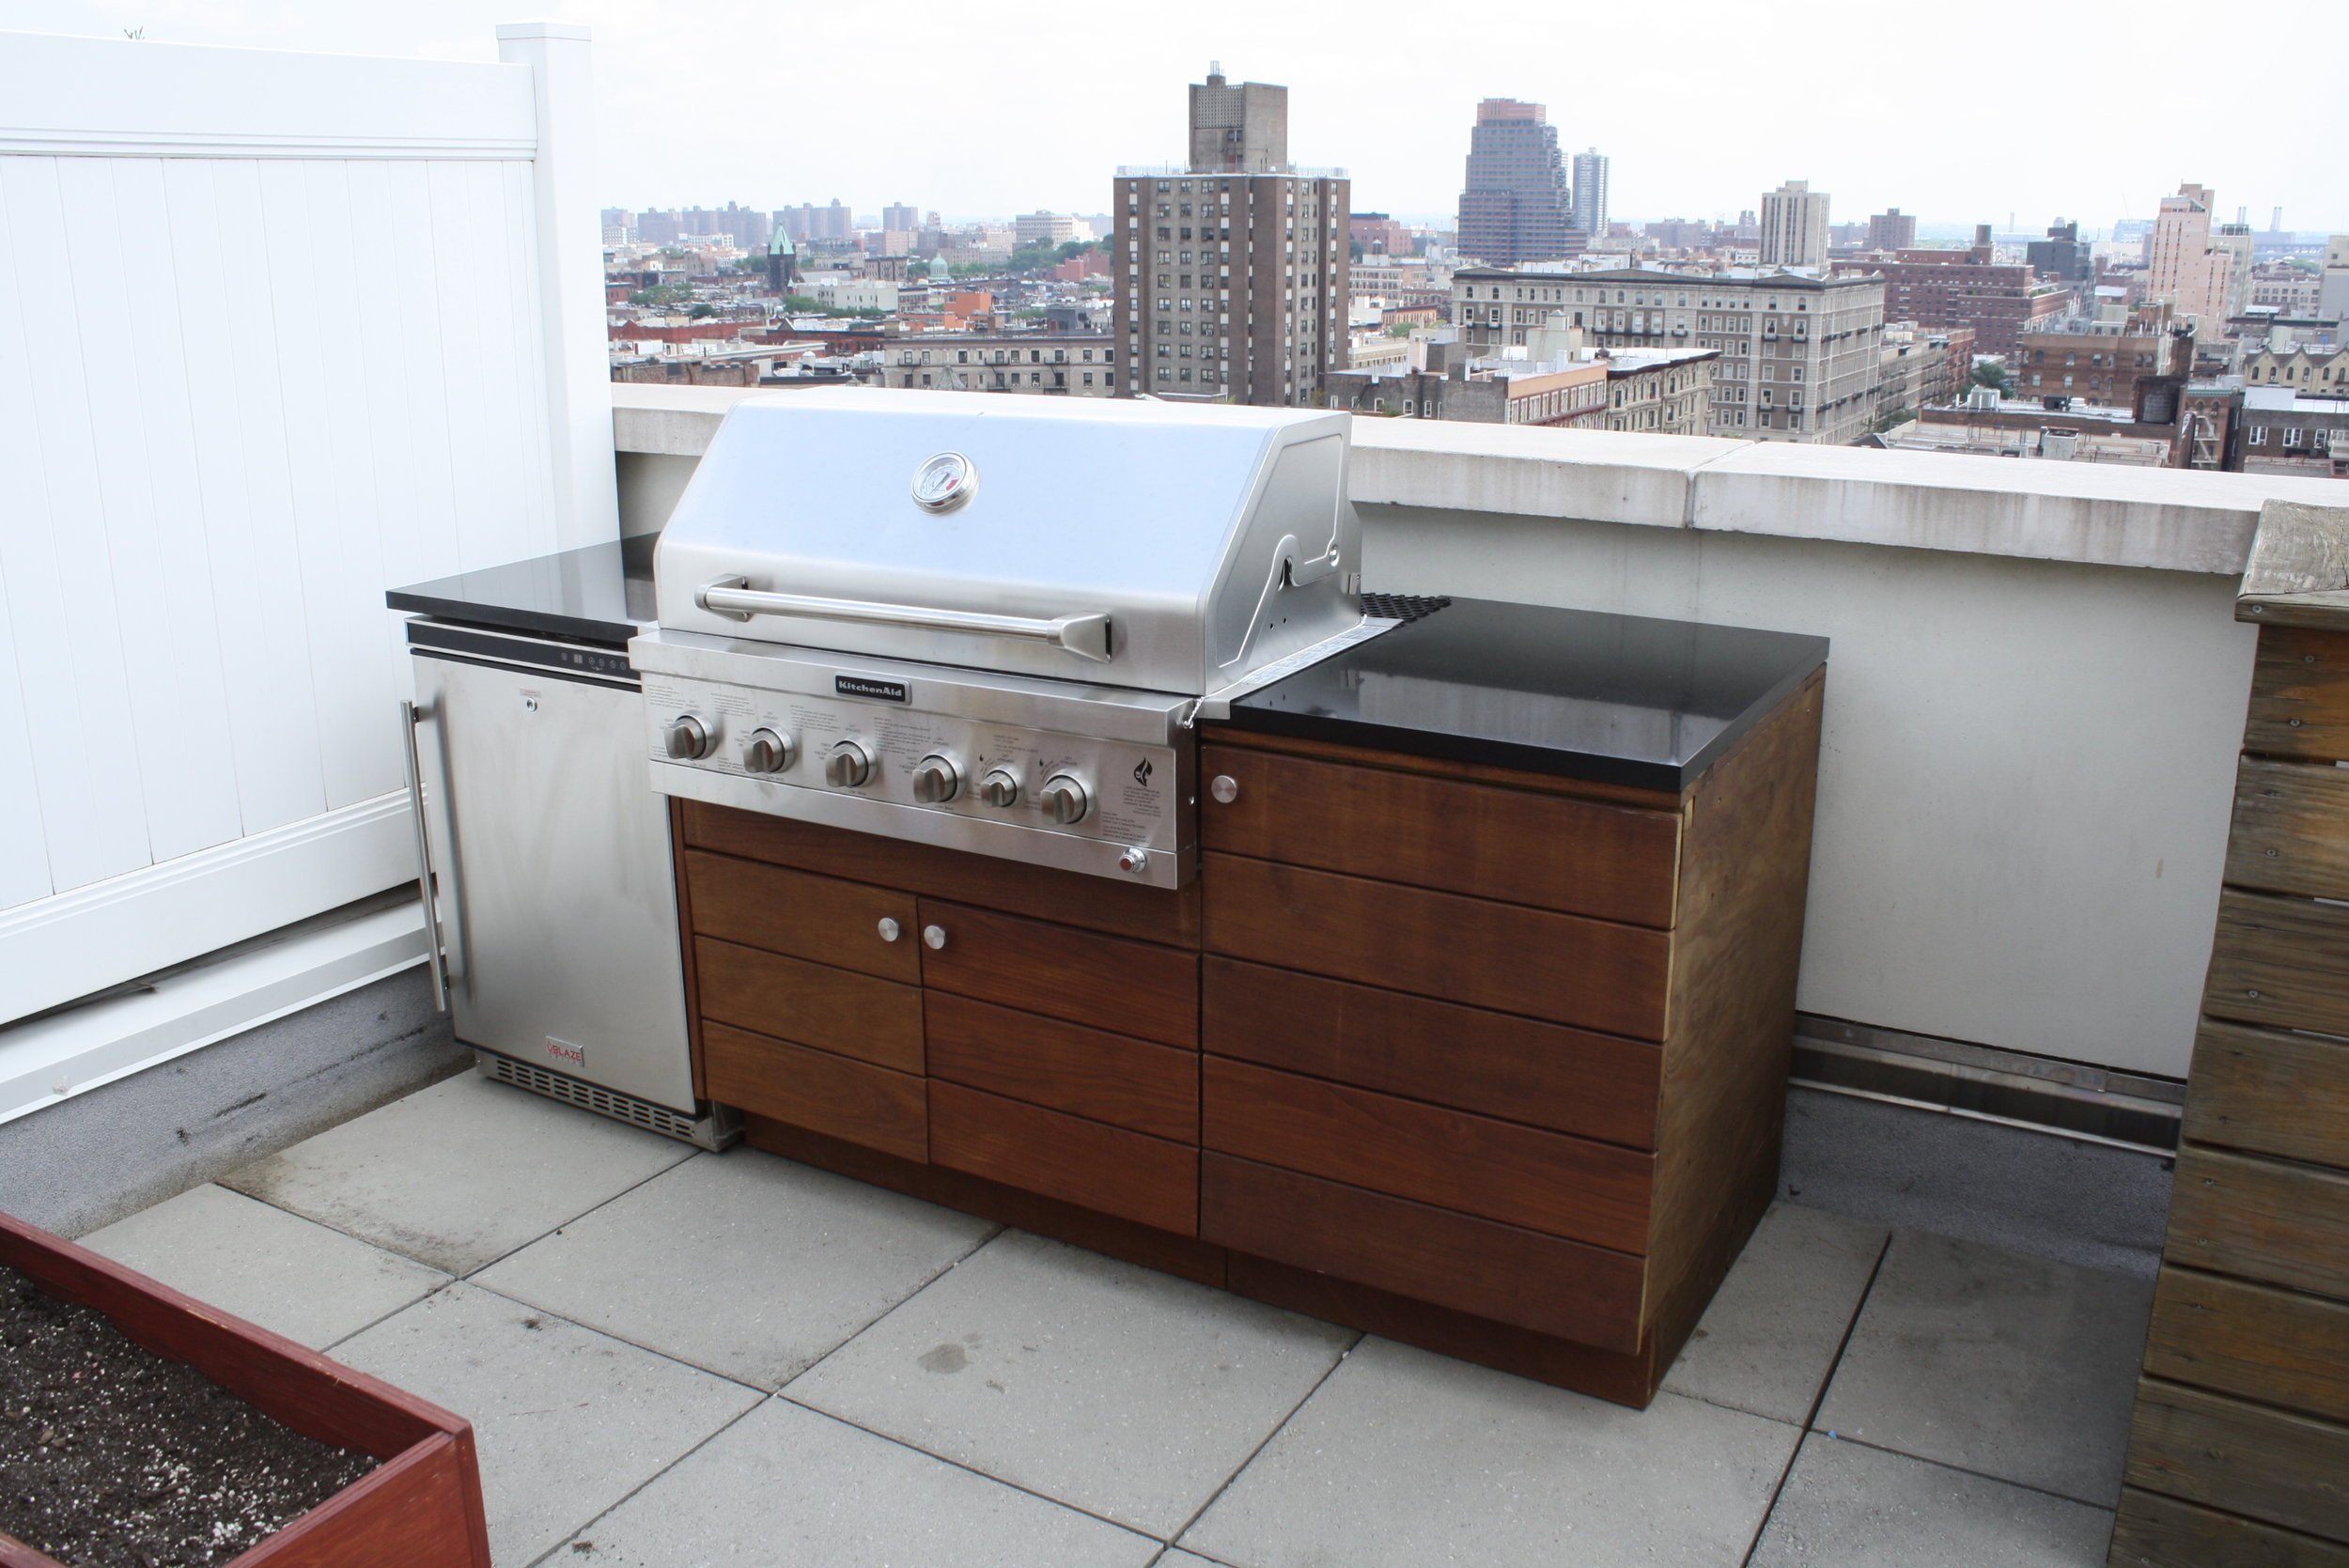 rooftop_kitchen_grill_nyc.JPG